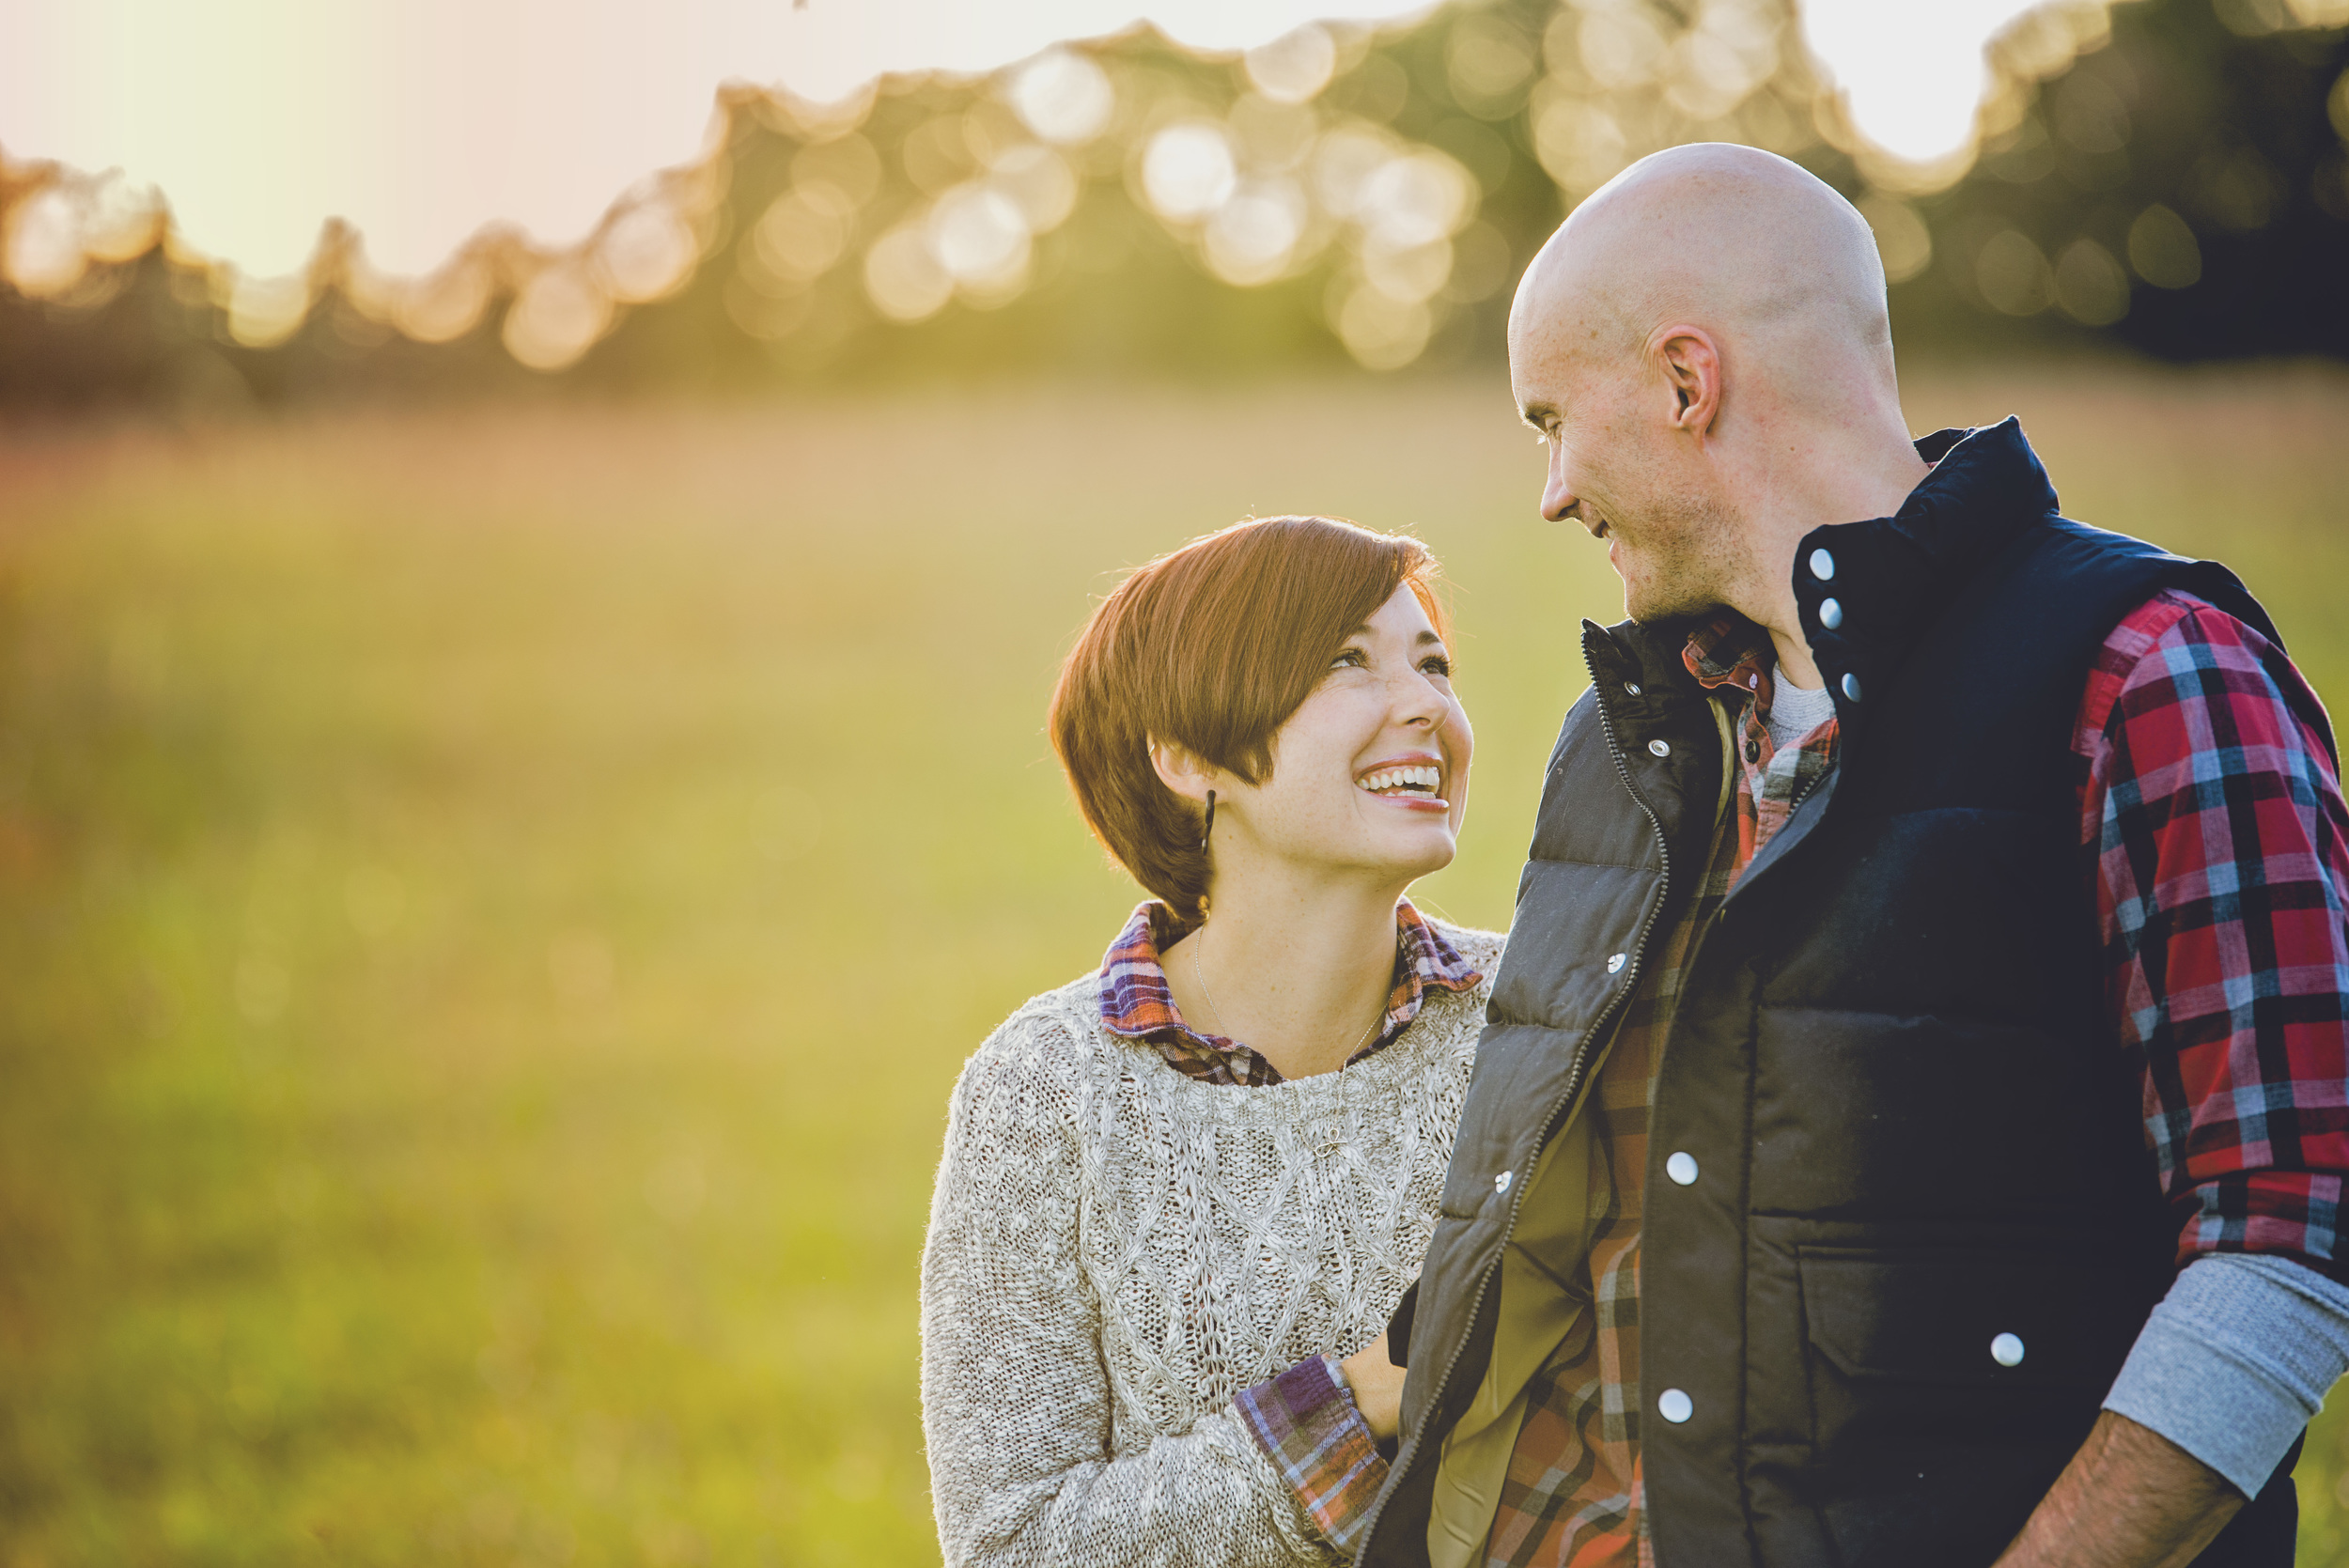 romantic_fall_field_engagement_session_lynchburg_va004.jpg